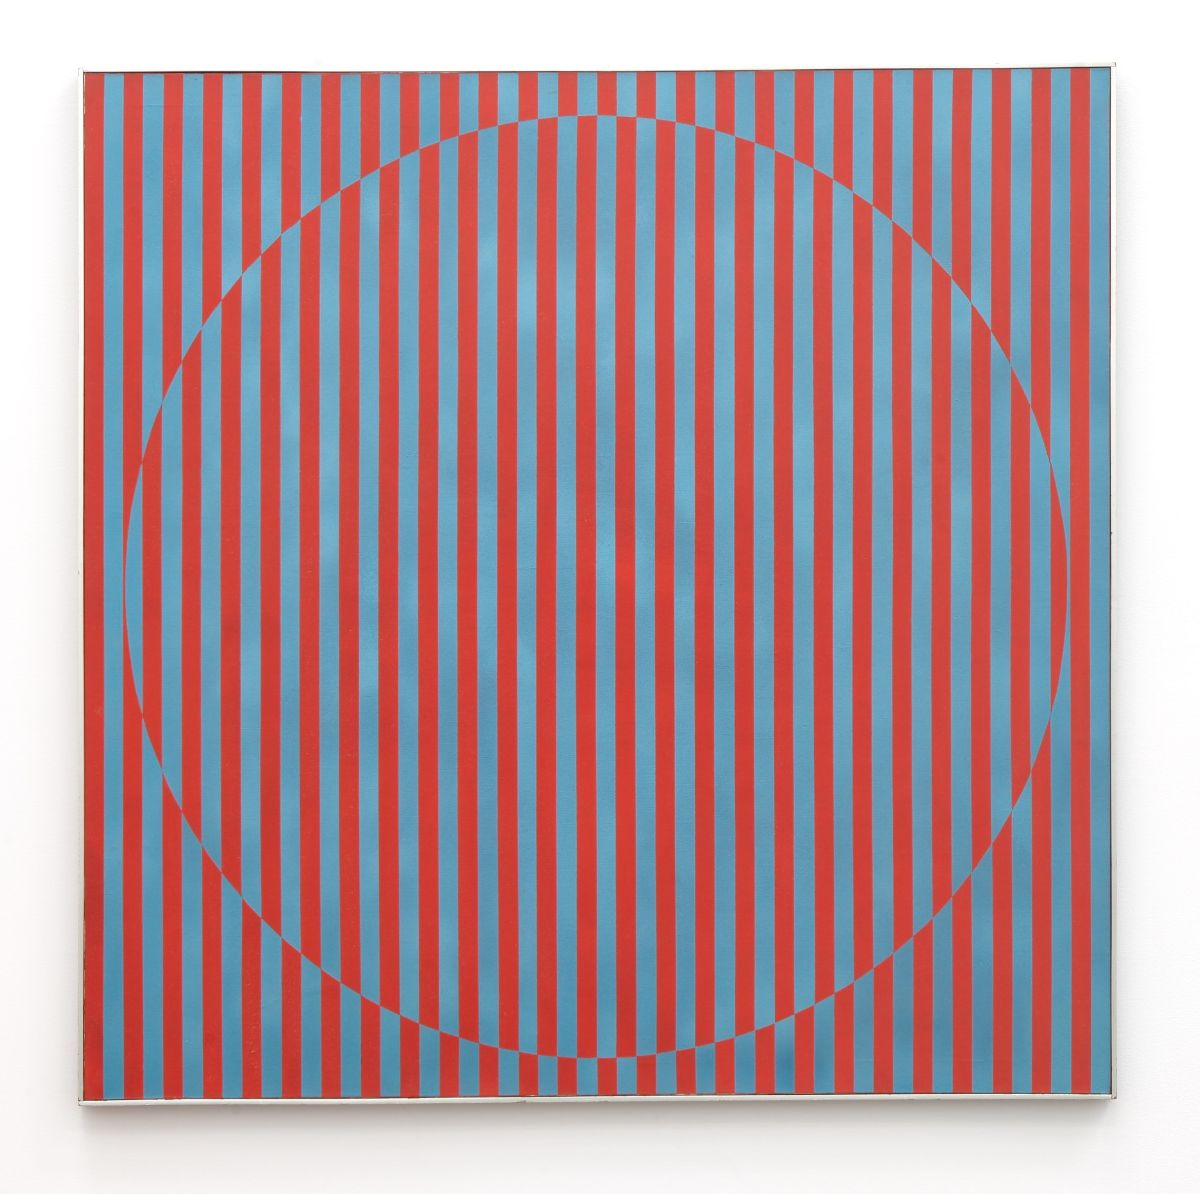 Rakuko Naito,  Untitled , 1964, acrylic on canvas, 52 x 52 inches